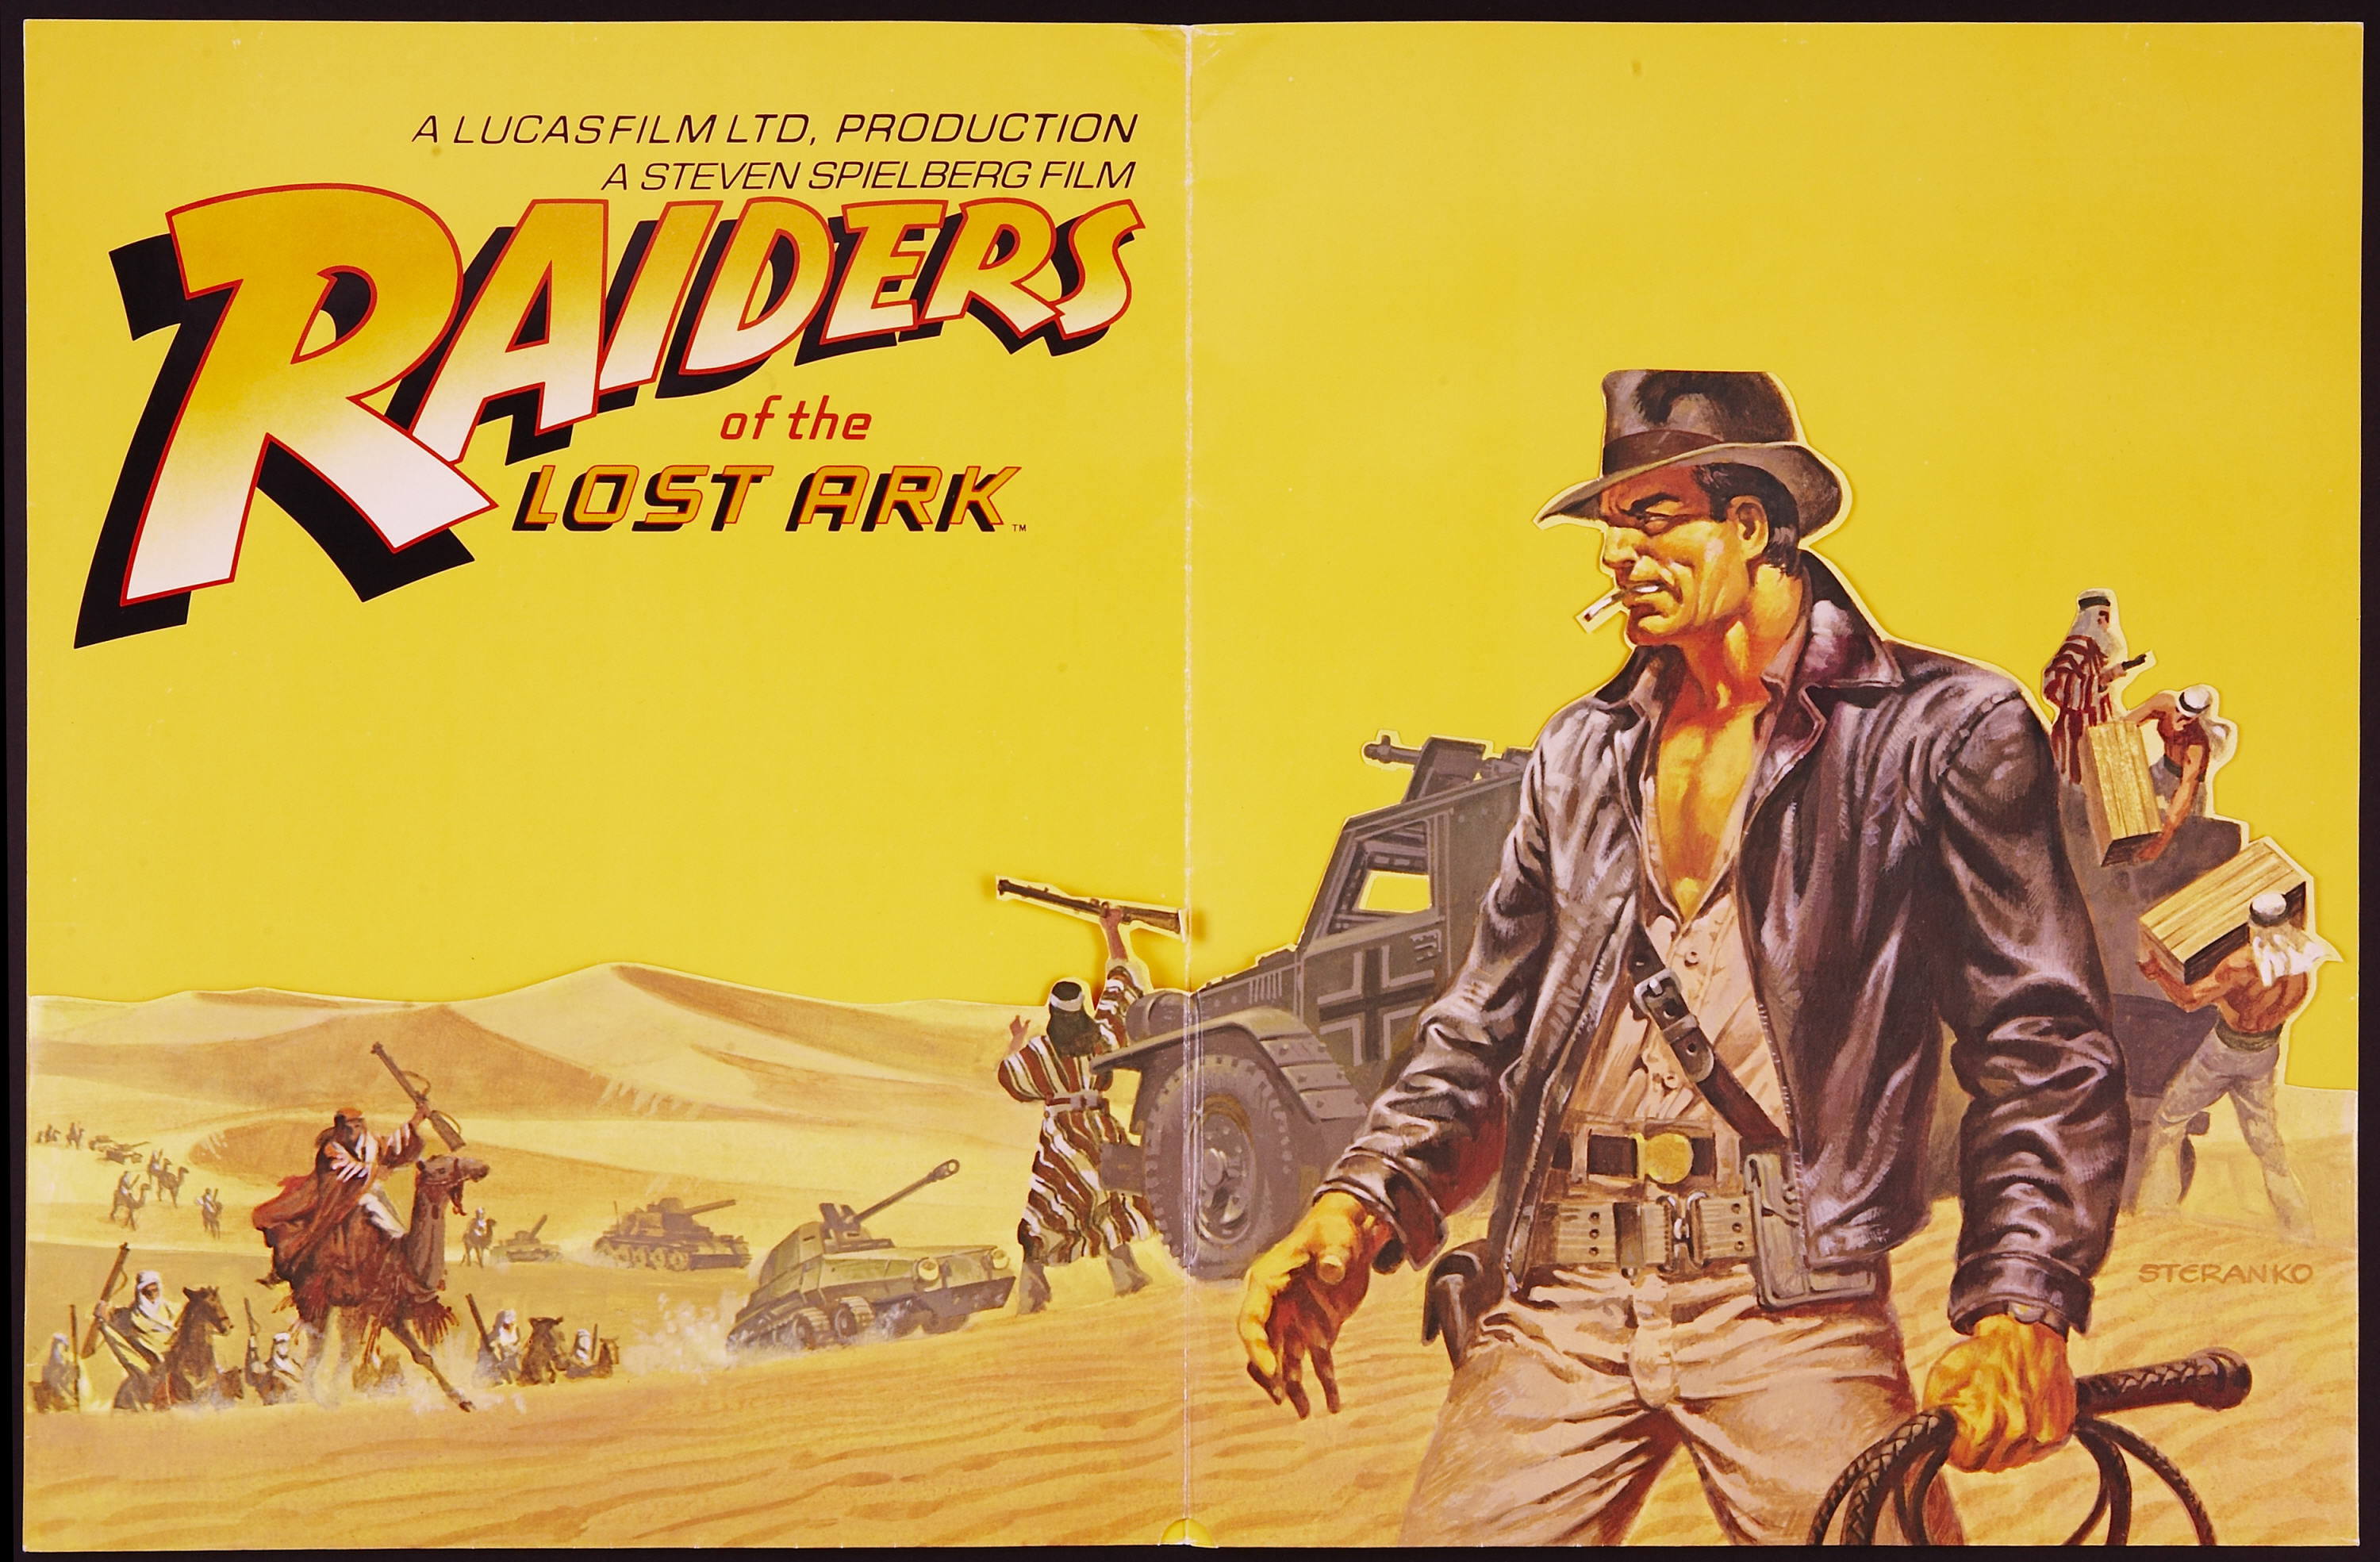 Raiders of the Lost Ark HD Wallpaper Background Image 3000x1969